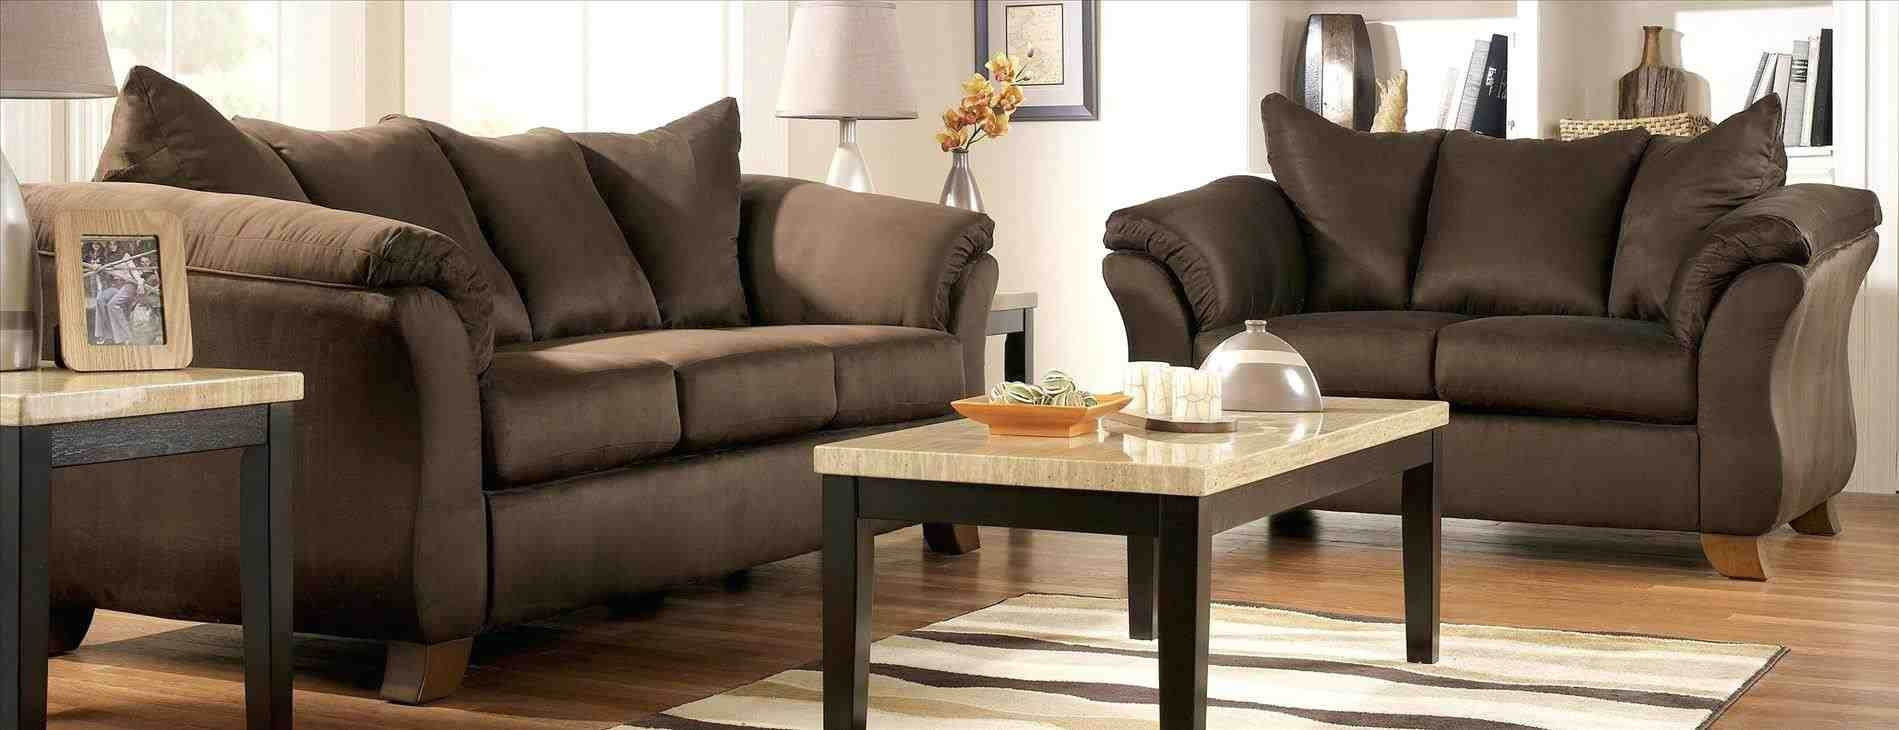 Best Cheap Sofa India Modern Sofa Set Designs In Kenya Sets 640 x 480